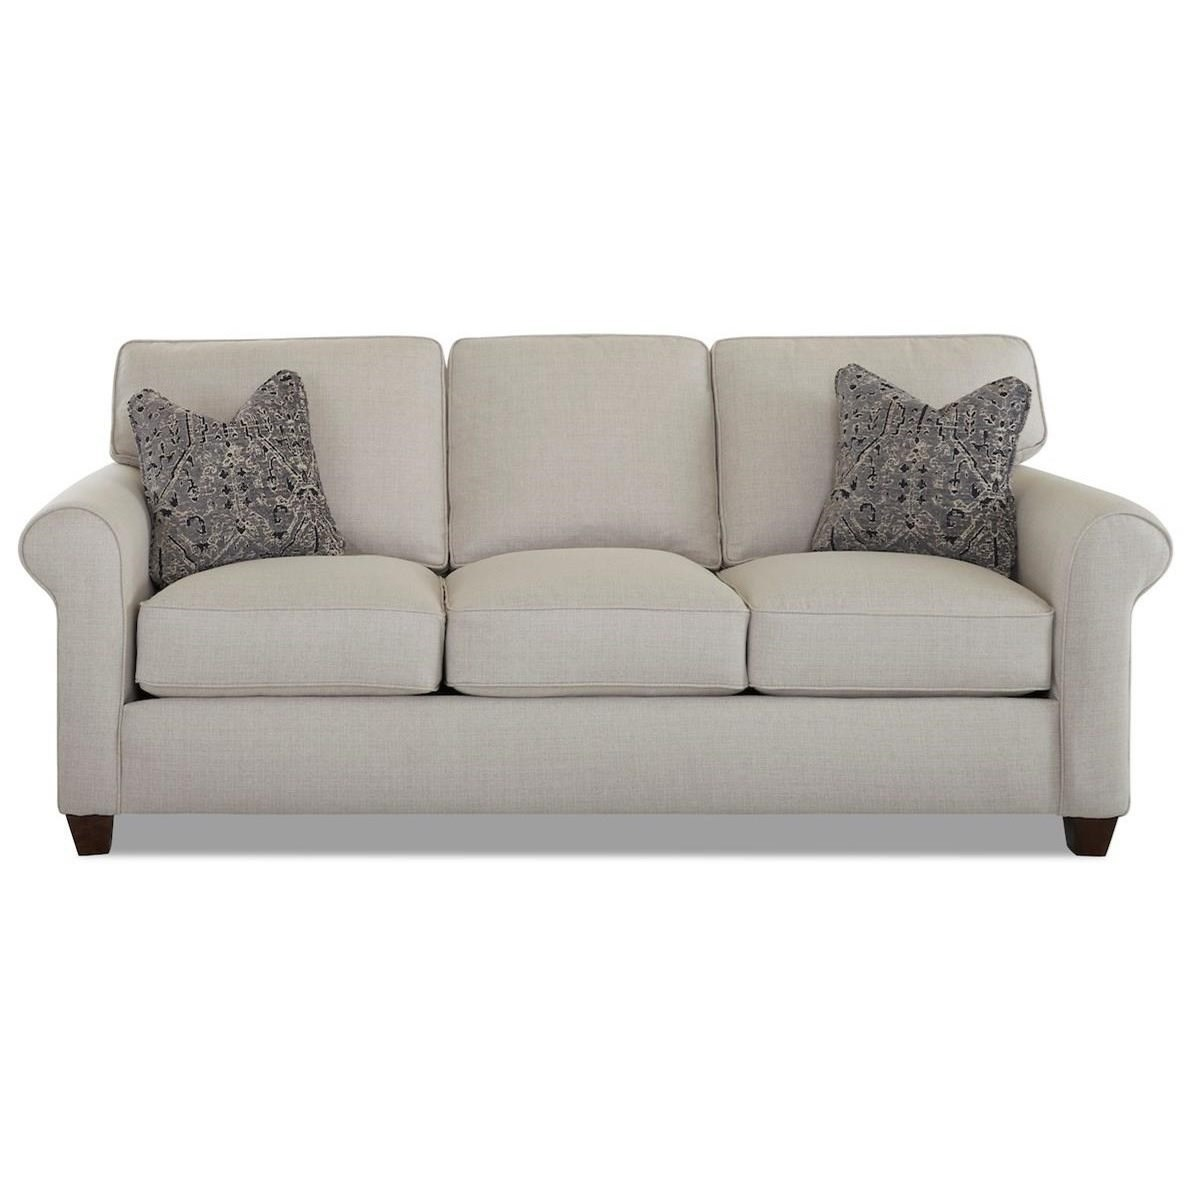 Lillington Distinctions  Extra Large Queen Innerspring Sleeper Sofa by Klaussner at Northeast Factory Direct